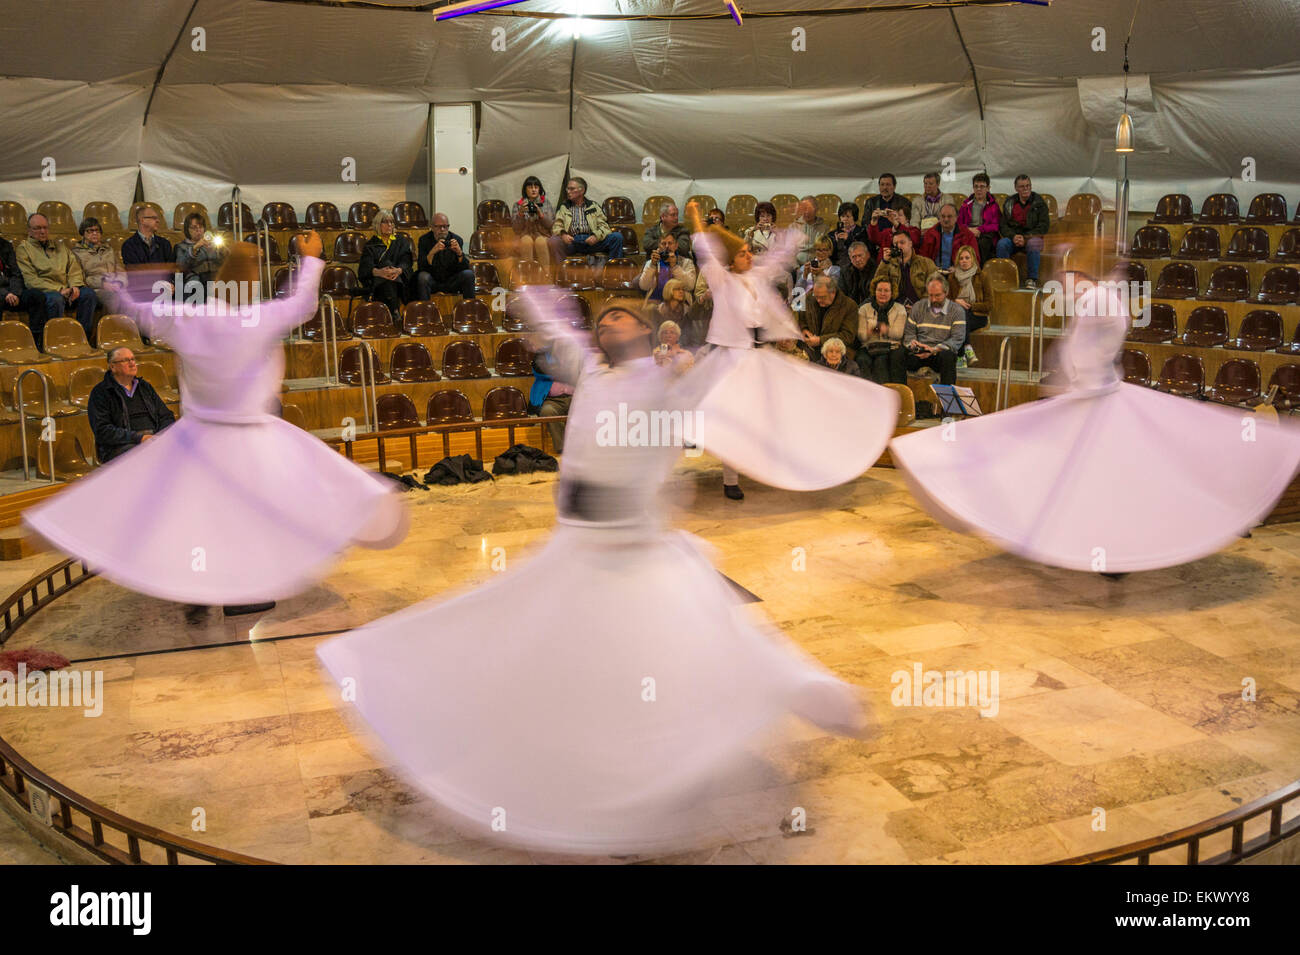 Whirling Dervish dancers, Pamukkale, Turkey Stock Photo